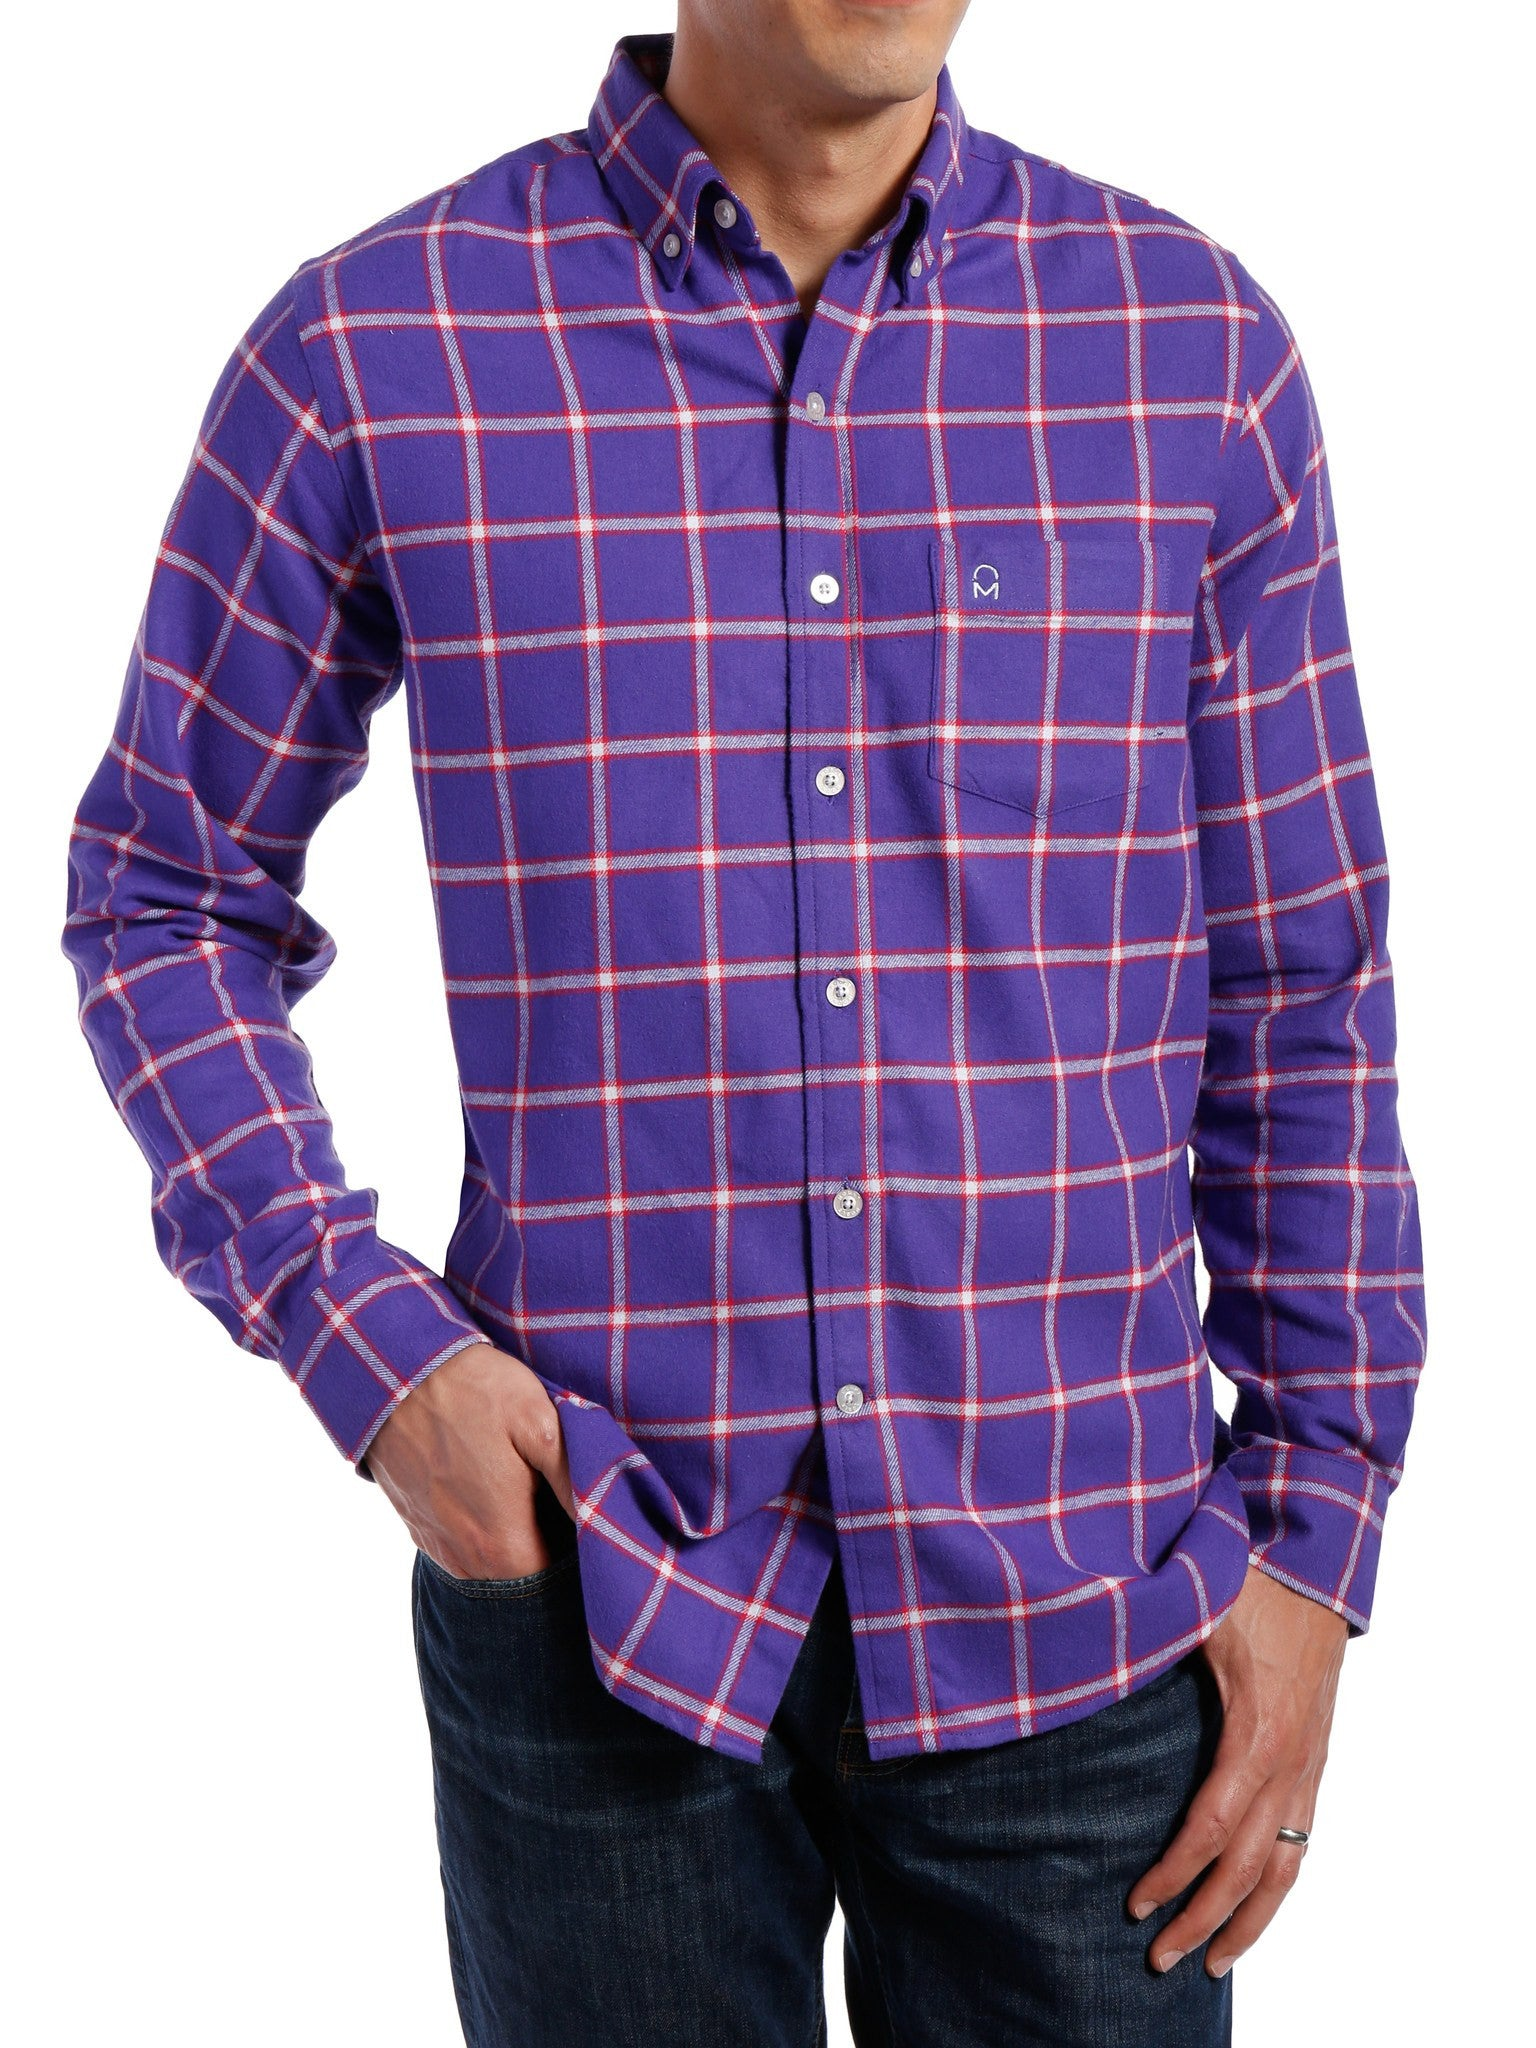 Mens 100 cotton flannel shirt regular fit noble mount for Men s regular fit shirts